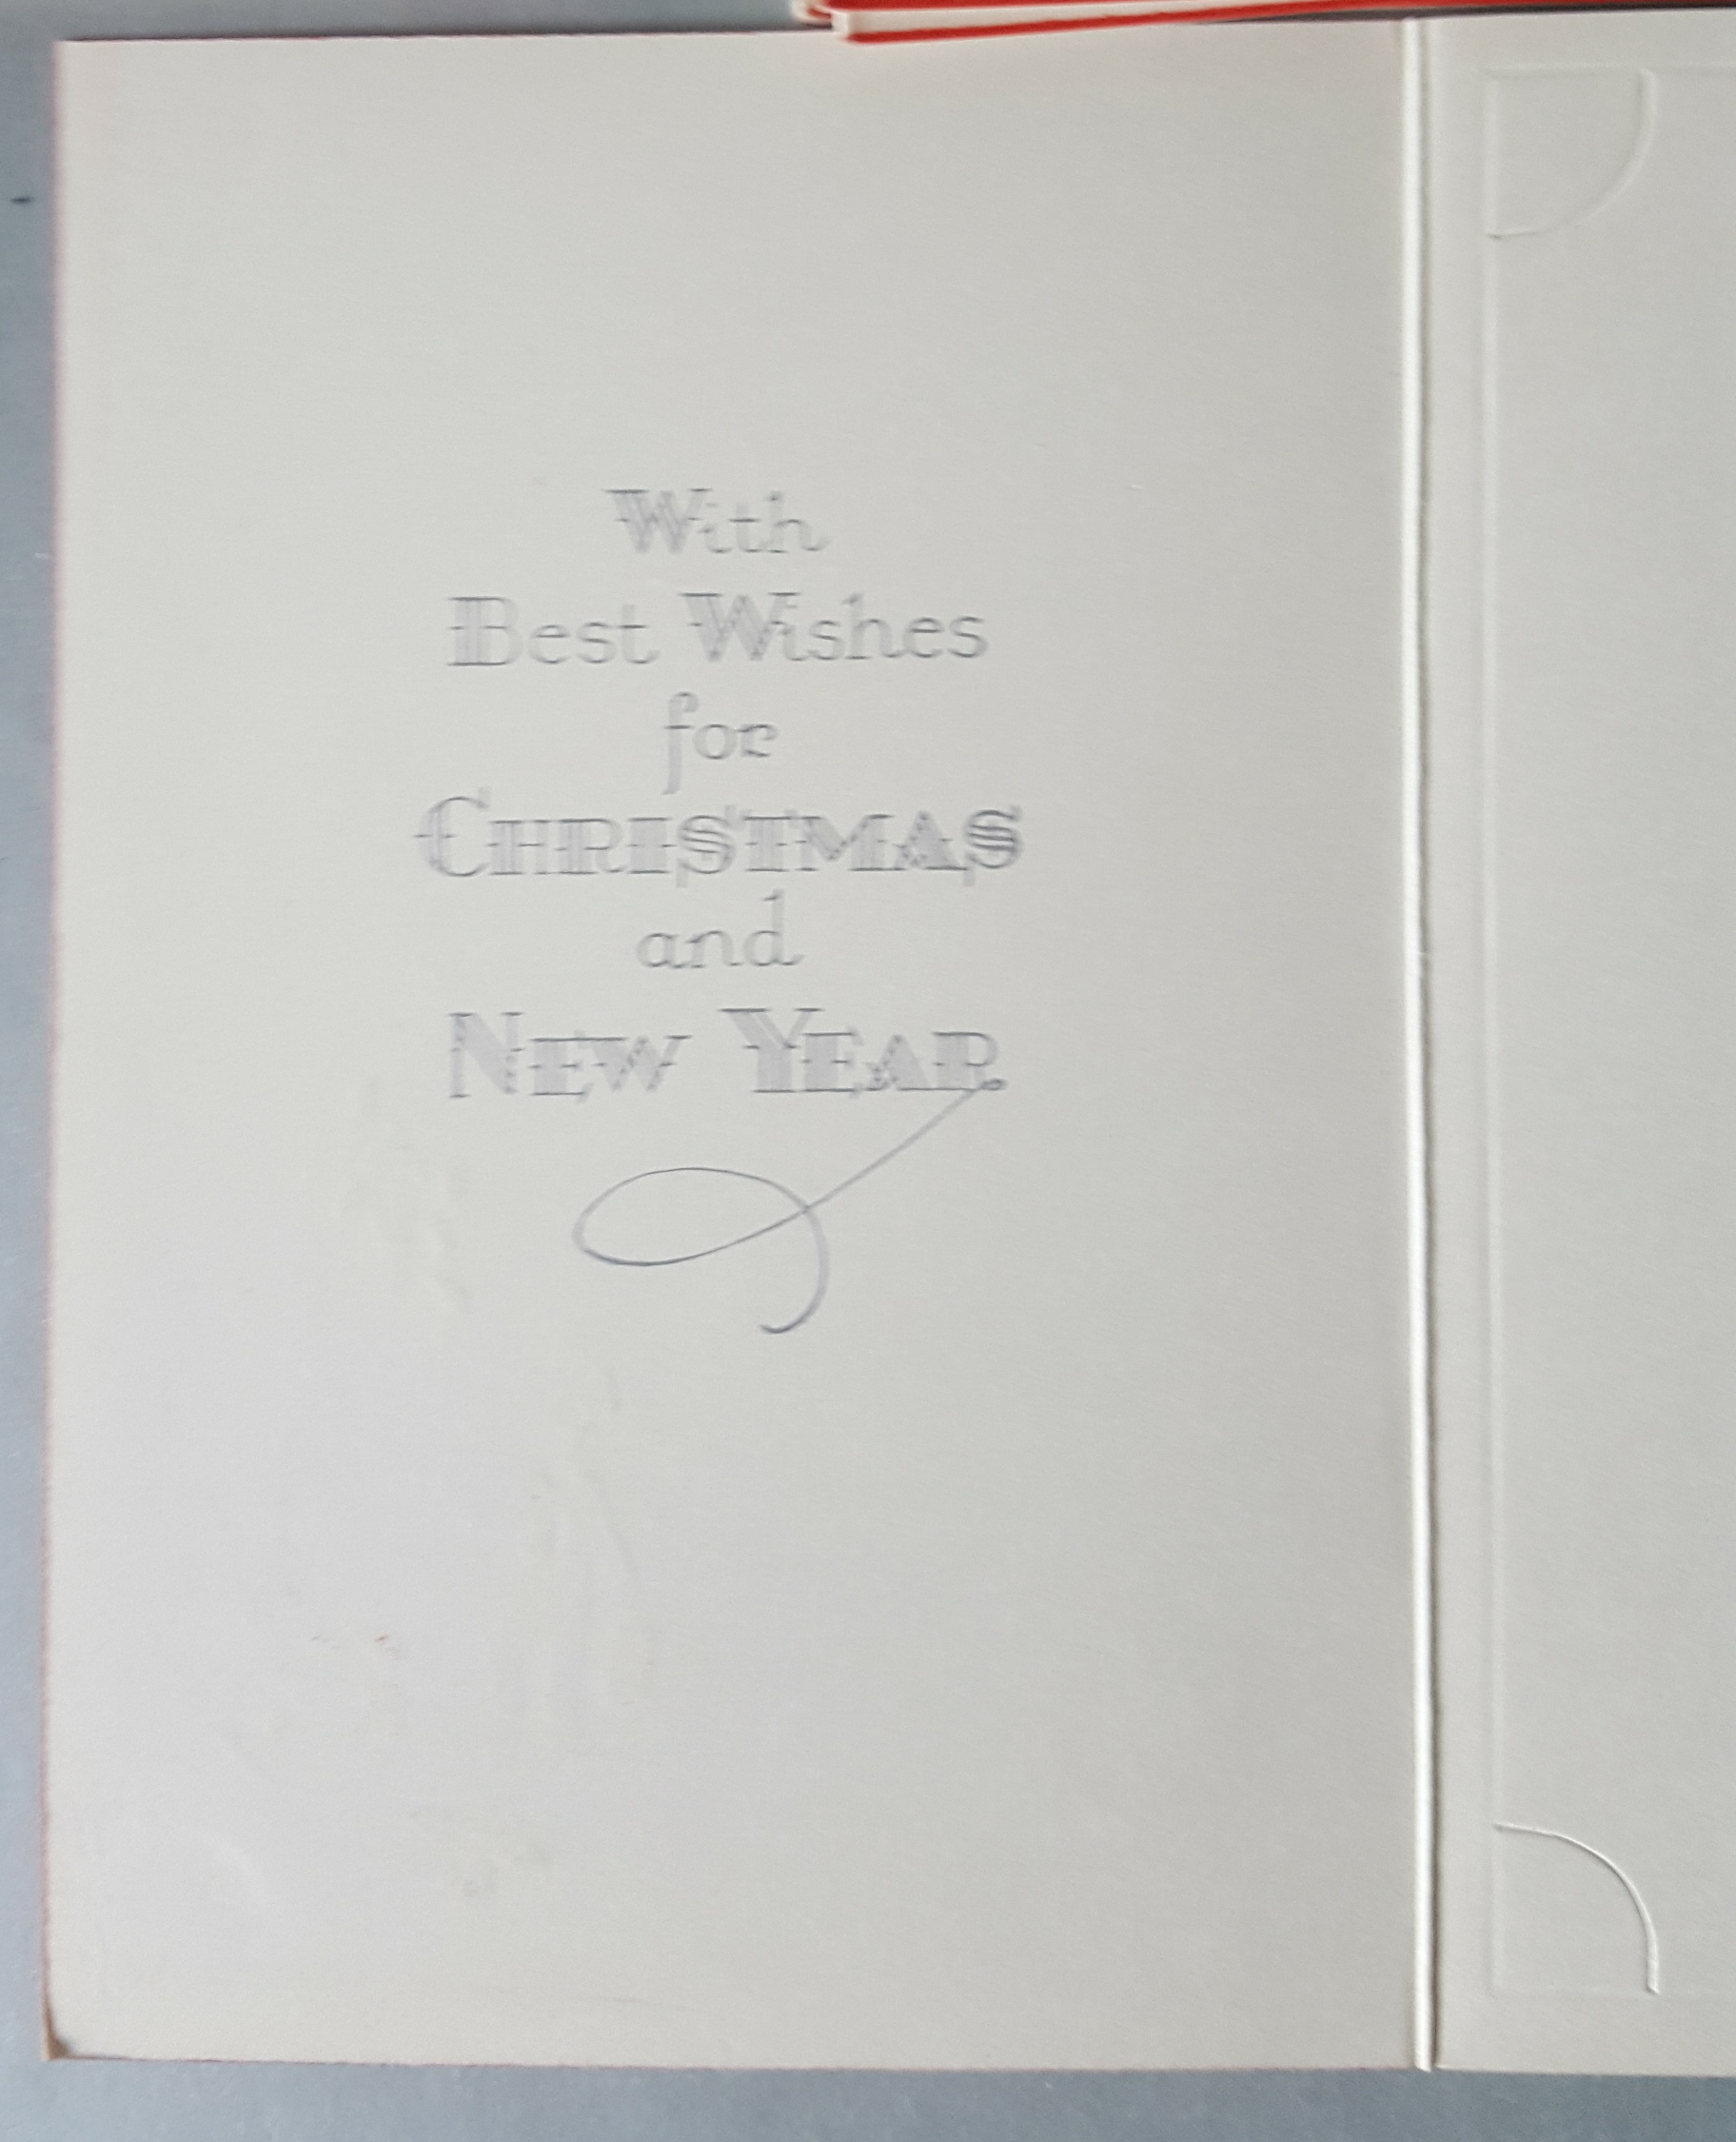 Vintage Retro Kitsch 29 Unused Christmas Greeting Cards With Photo Holder c1950/60's - Image 3 of 4